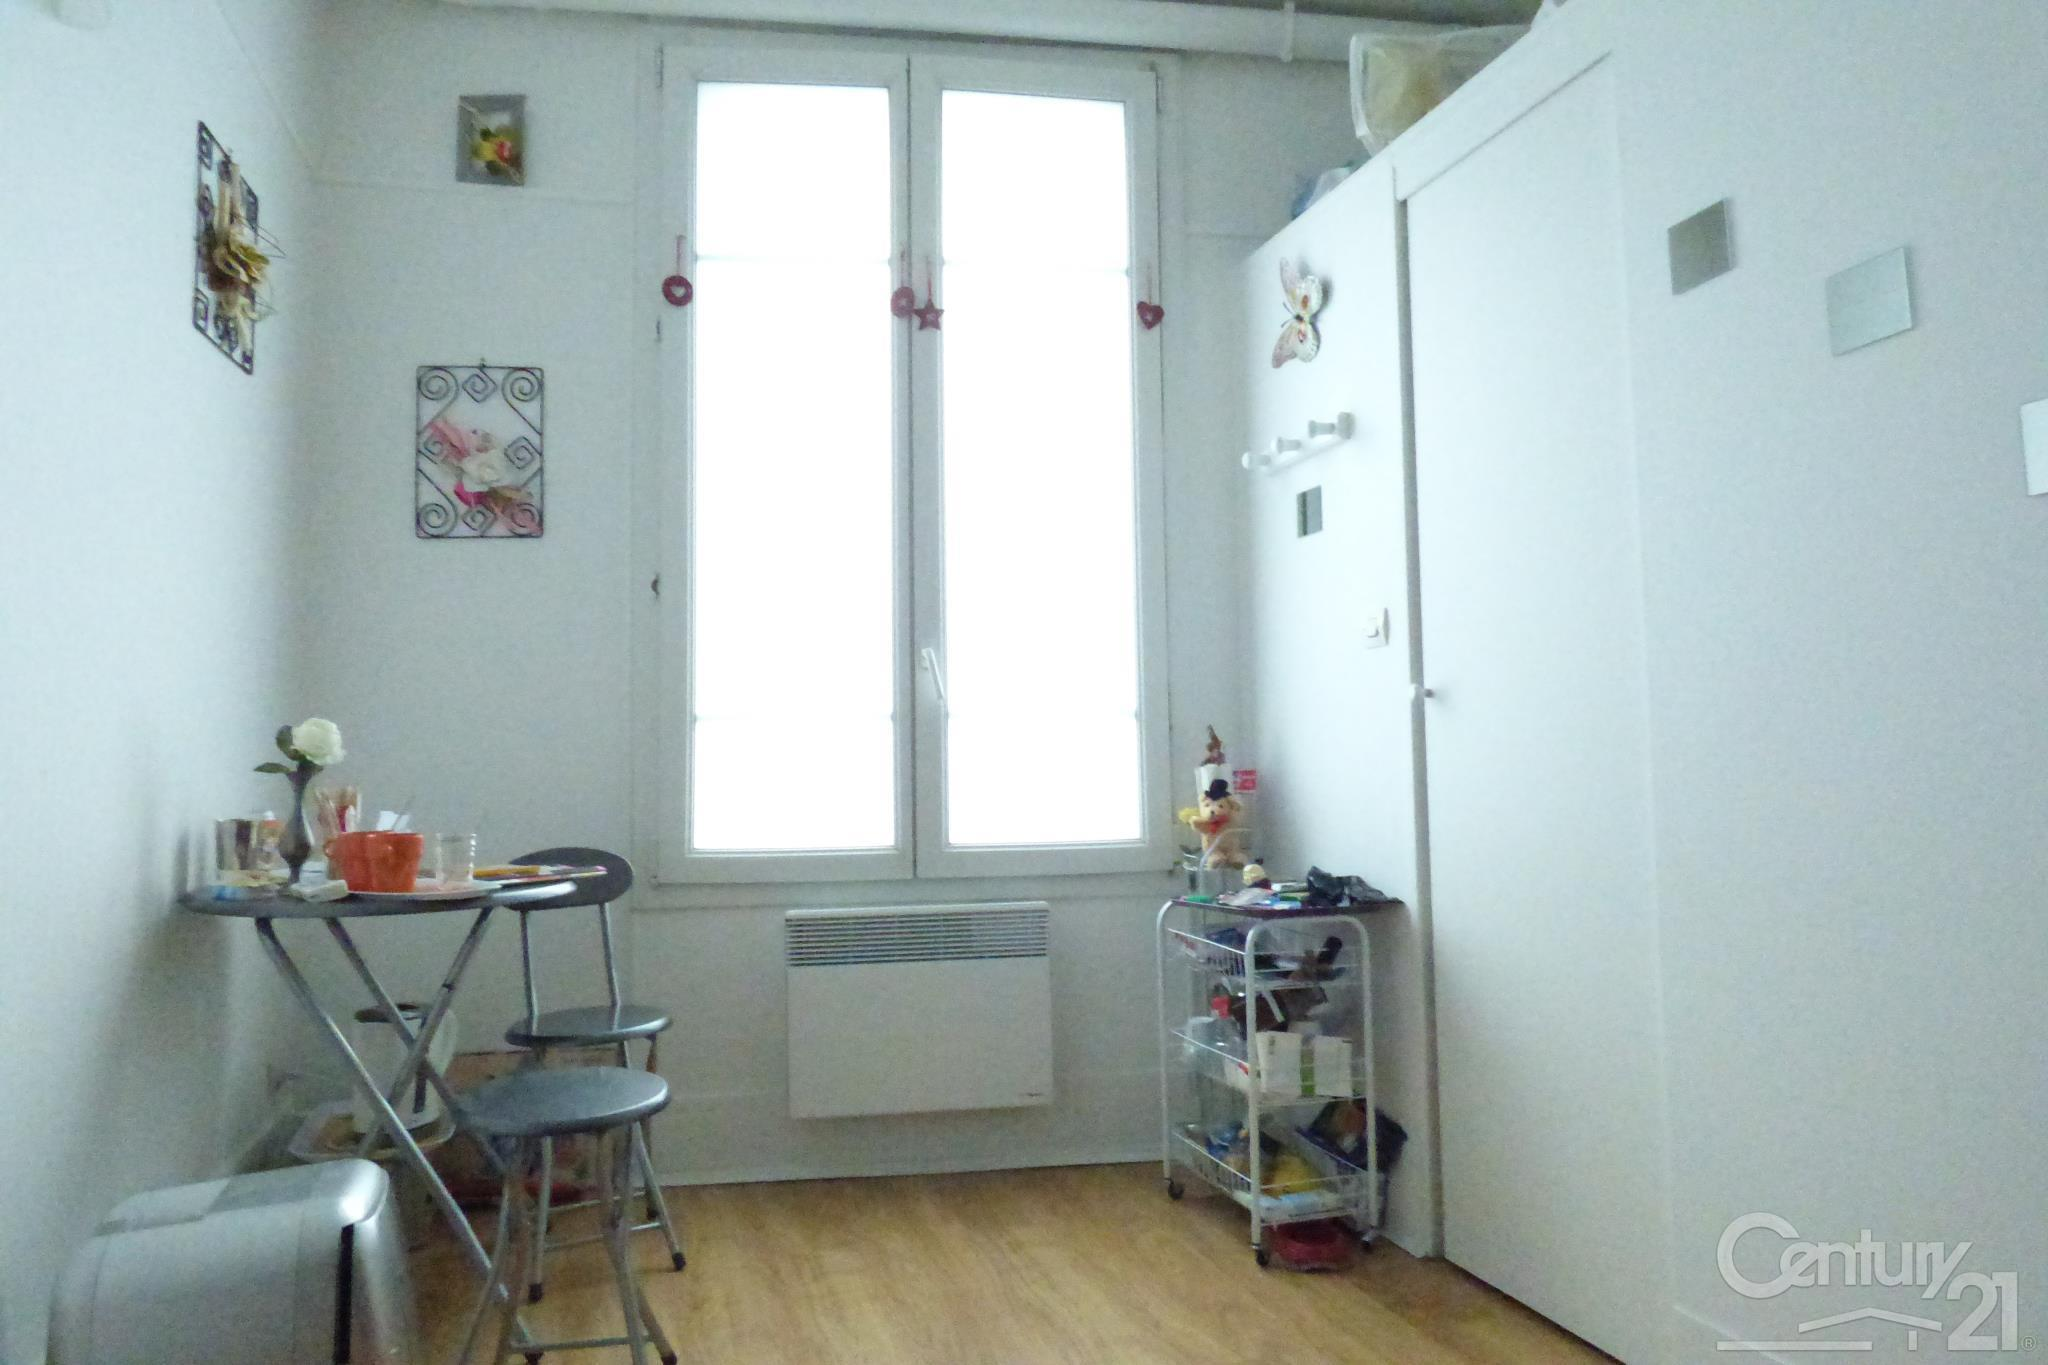 Divers à vendre - 10 m2 - VINCENNES - 94 - ILE-DE-FRANCE